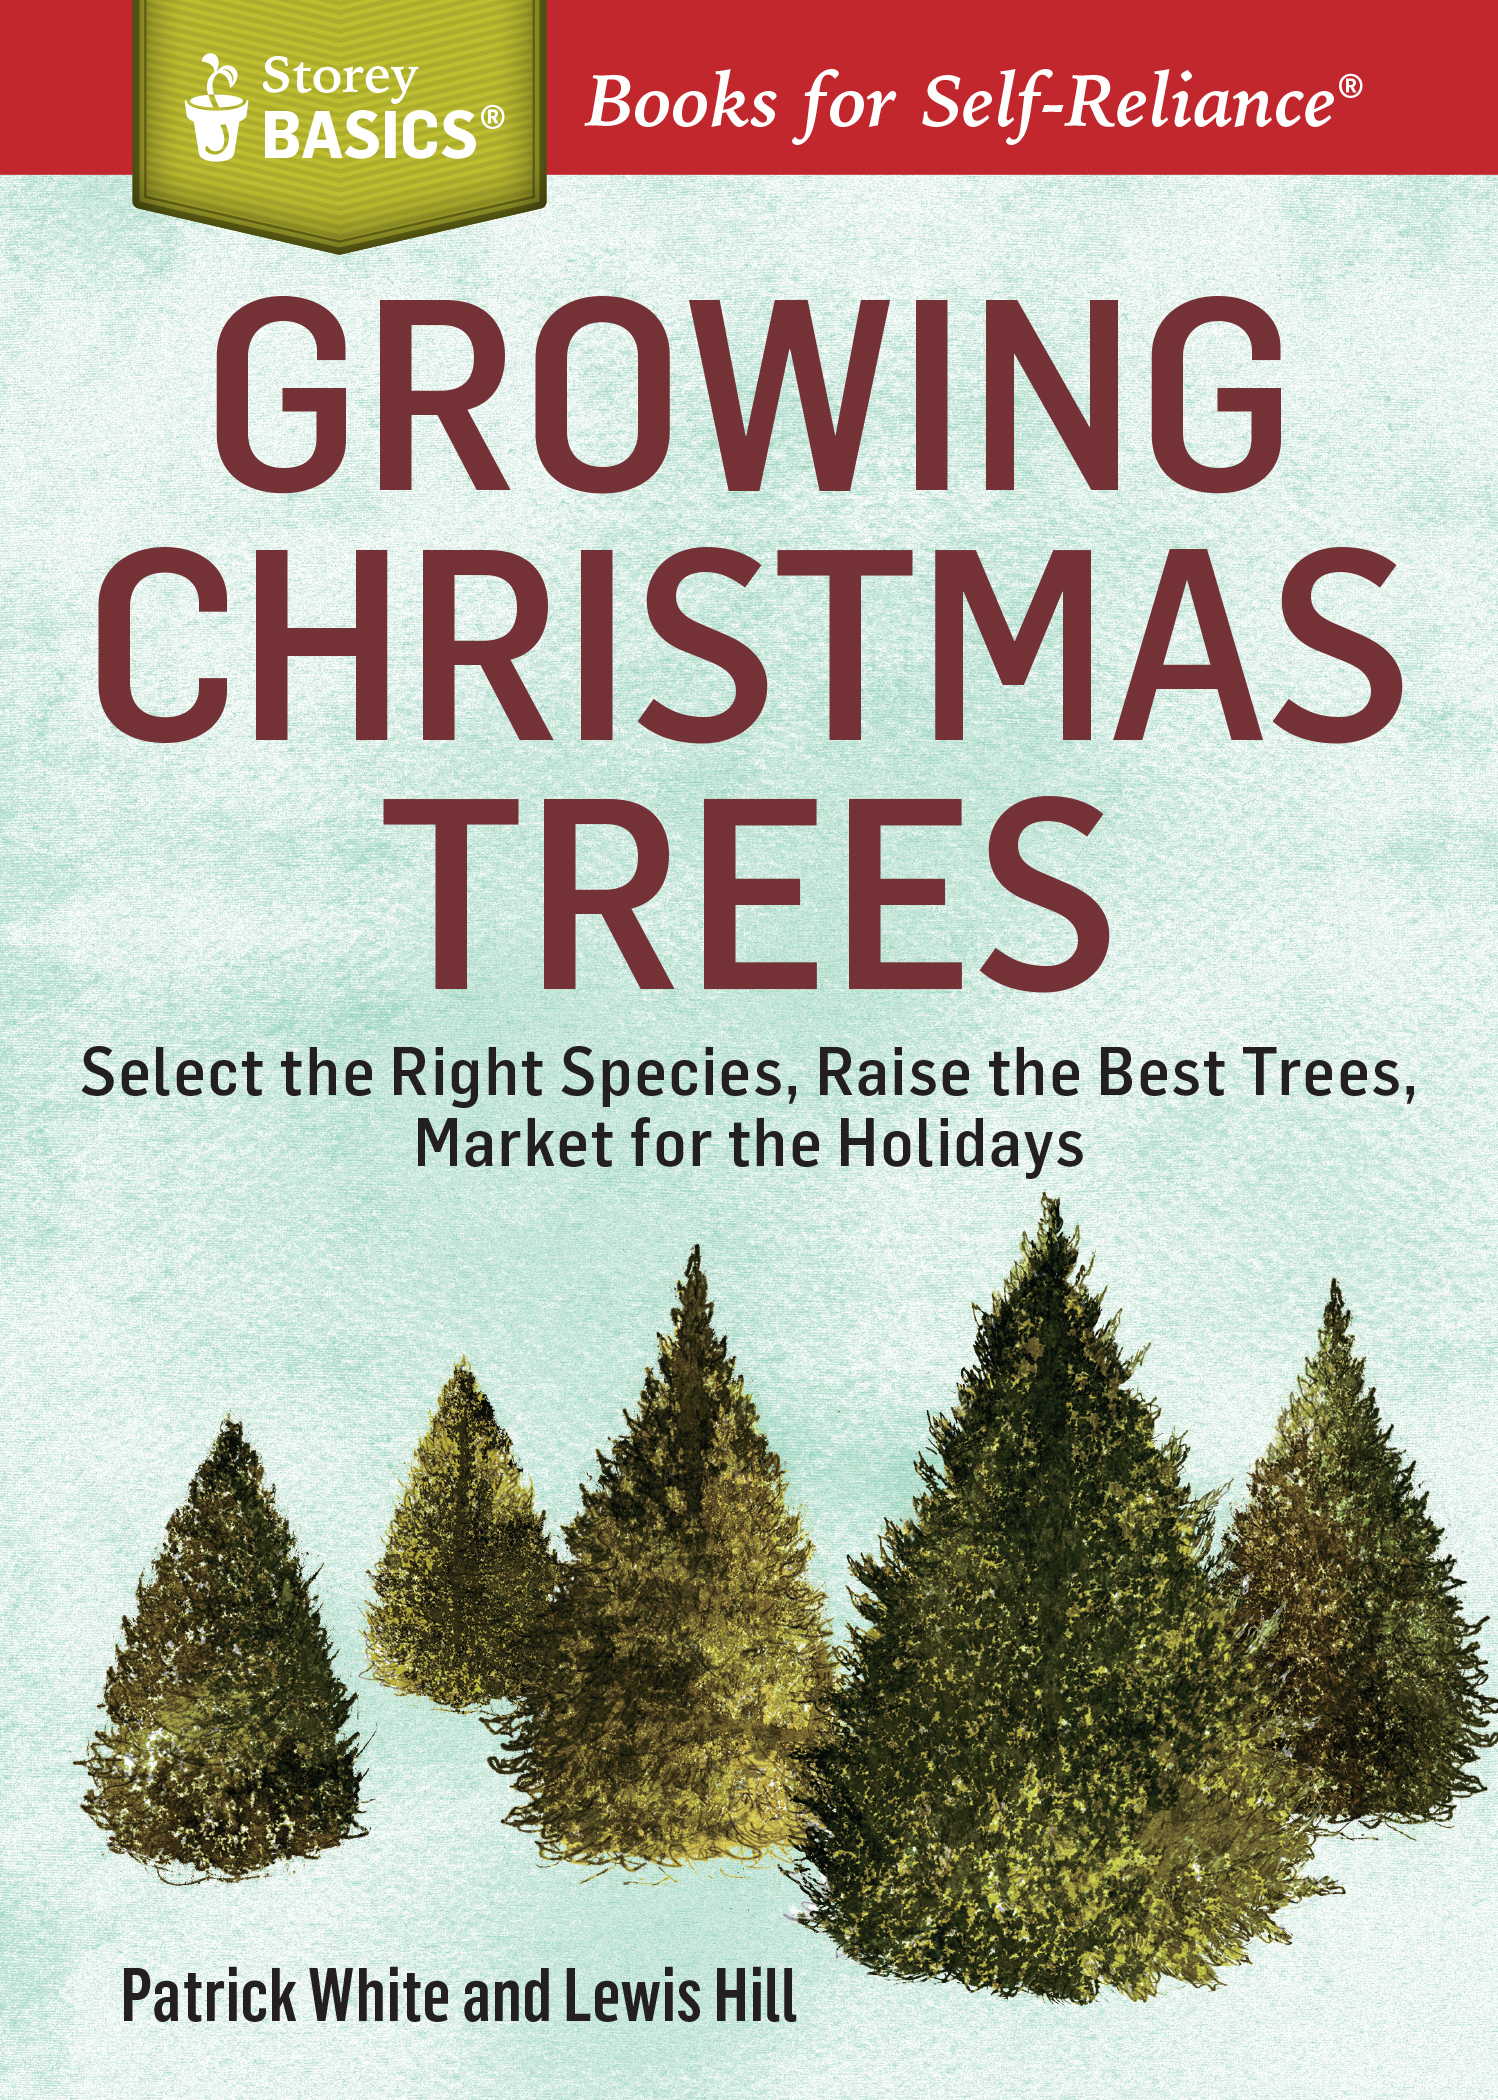 Growing Christmas Trees Select the Right Species, Raise the Best Trees, Market for the Holidays. A Storey BASICS® Title - Patrick White